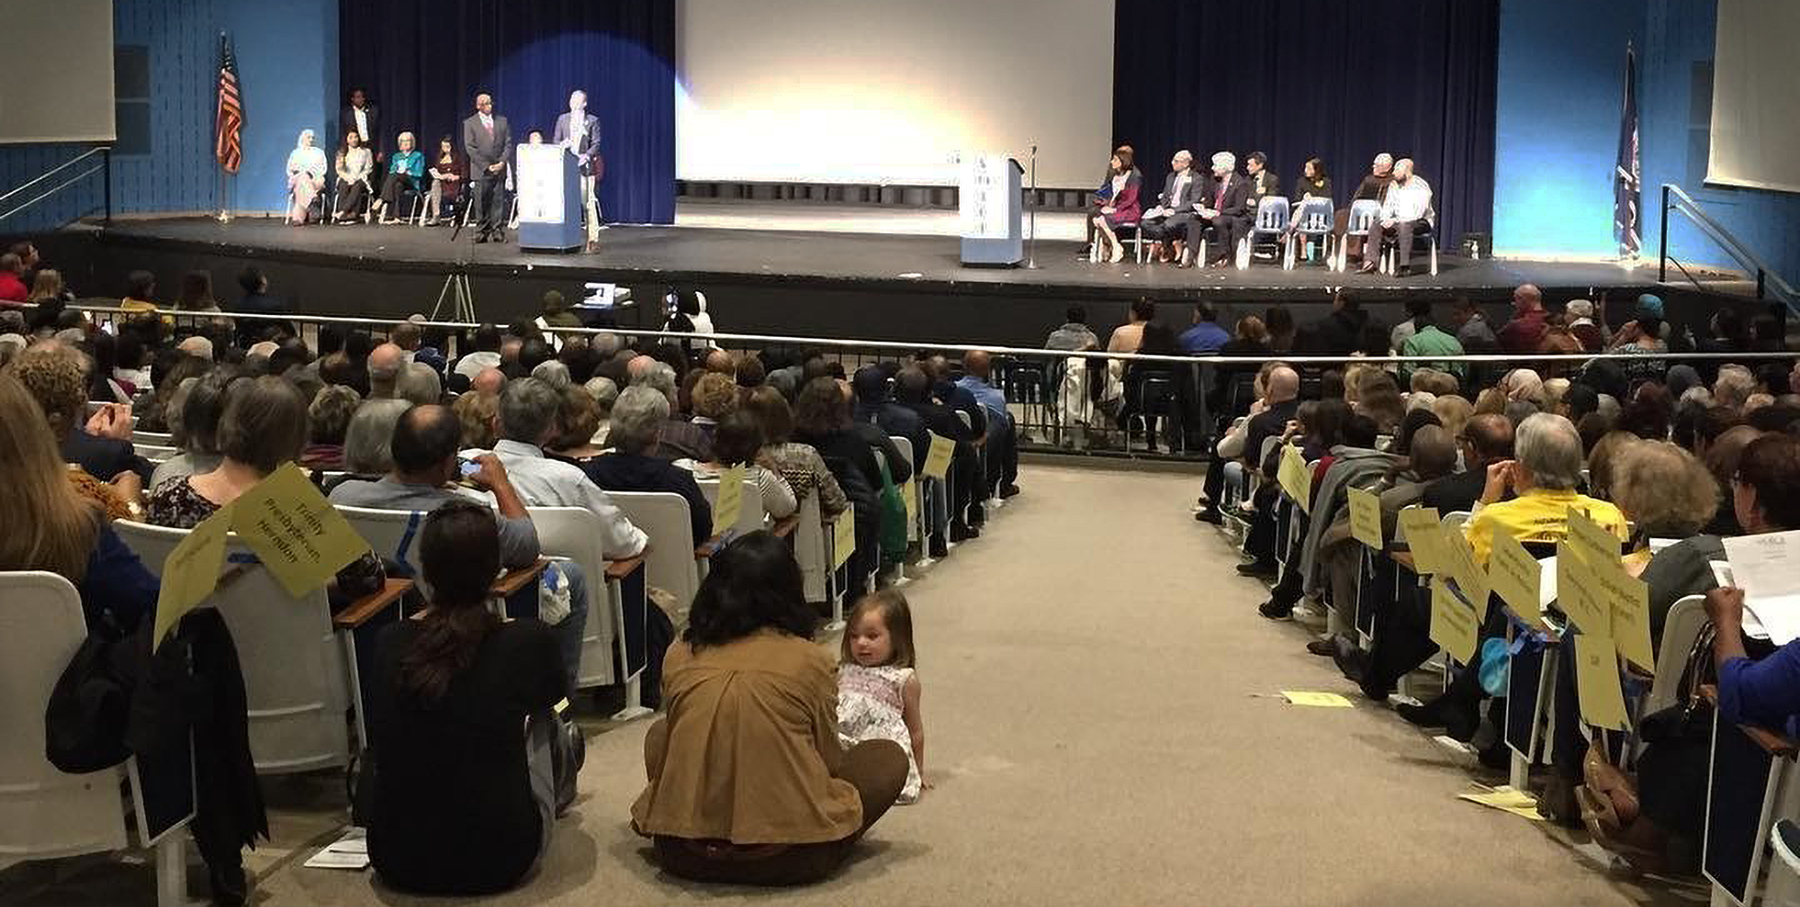 More than 1,300 people gathered in Virginia on Sunday to hear State Attorney General Mark Herring call for reforms to the state's cash bail system. The event was sponsored by Virginians Organized for Interfaith Community Engagement (VOICE).